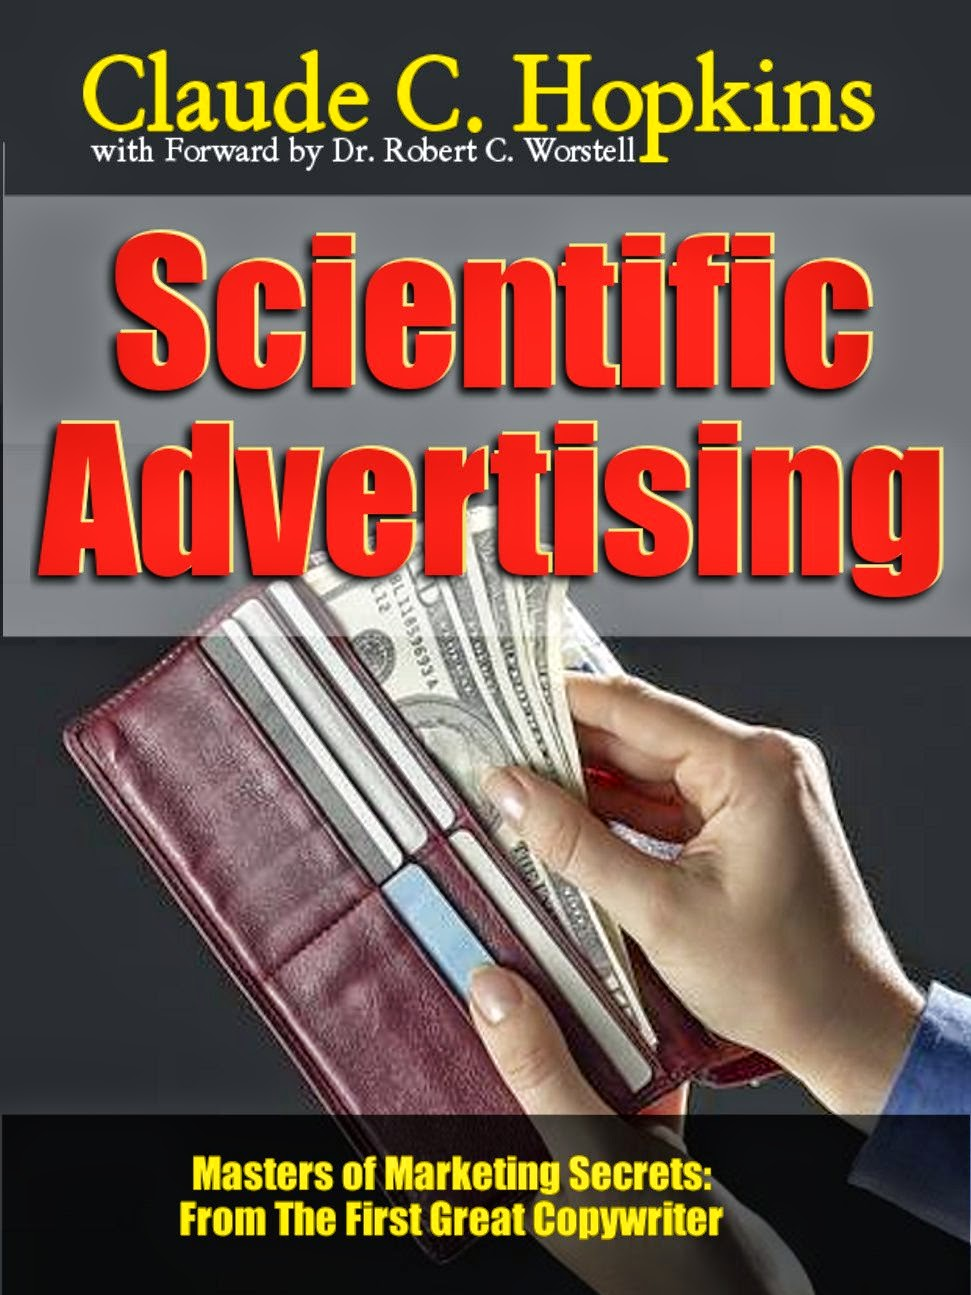 Claude C. Hopkins' Scientific Advertising now available as ebook and print versions in all fine bookstores.